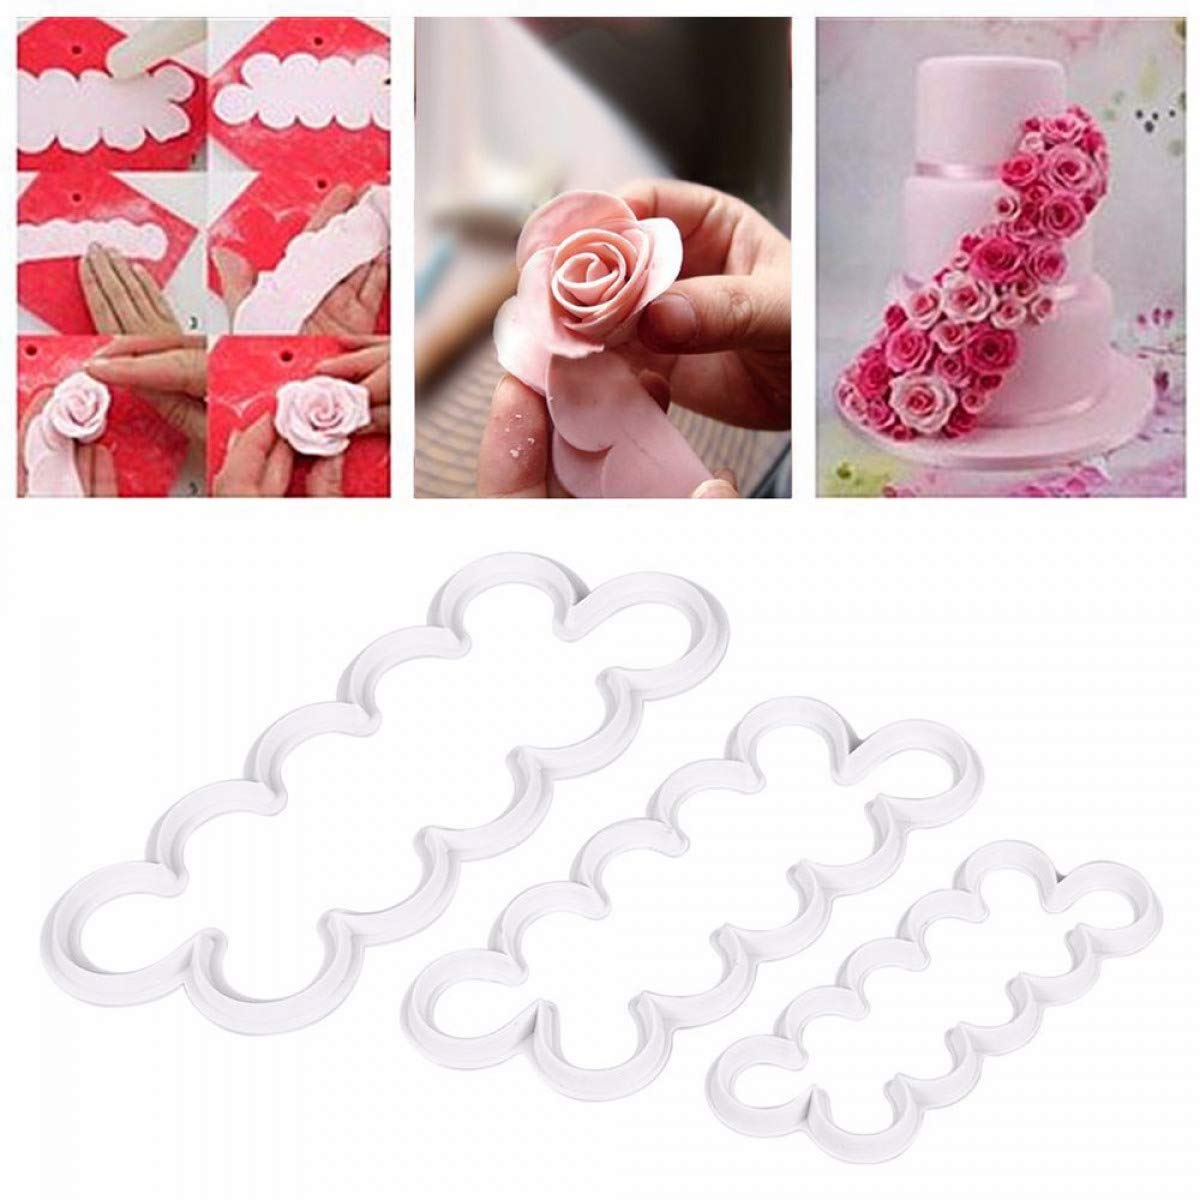 Amazon.com: Myhome99 cake mold pcs/set Rose Flower Cake Molds Plastic White Rose Flower Fondant Cutter Cake Decorating Molds Biscuit Cutter: Kitchen & ...